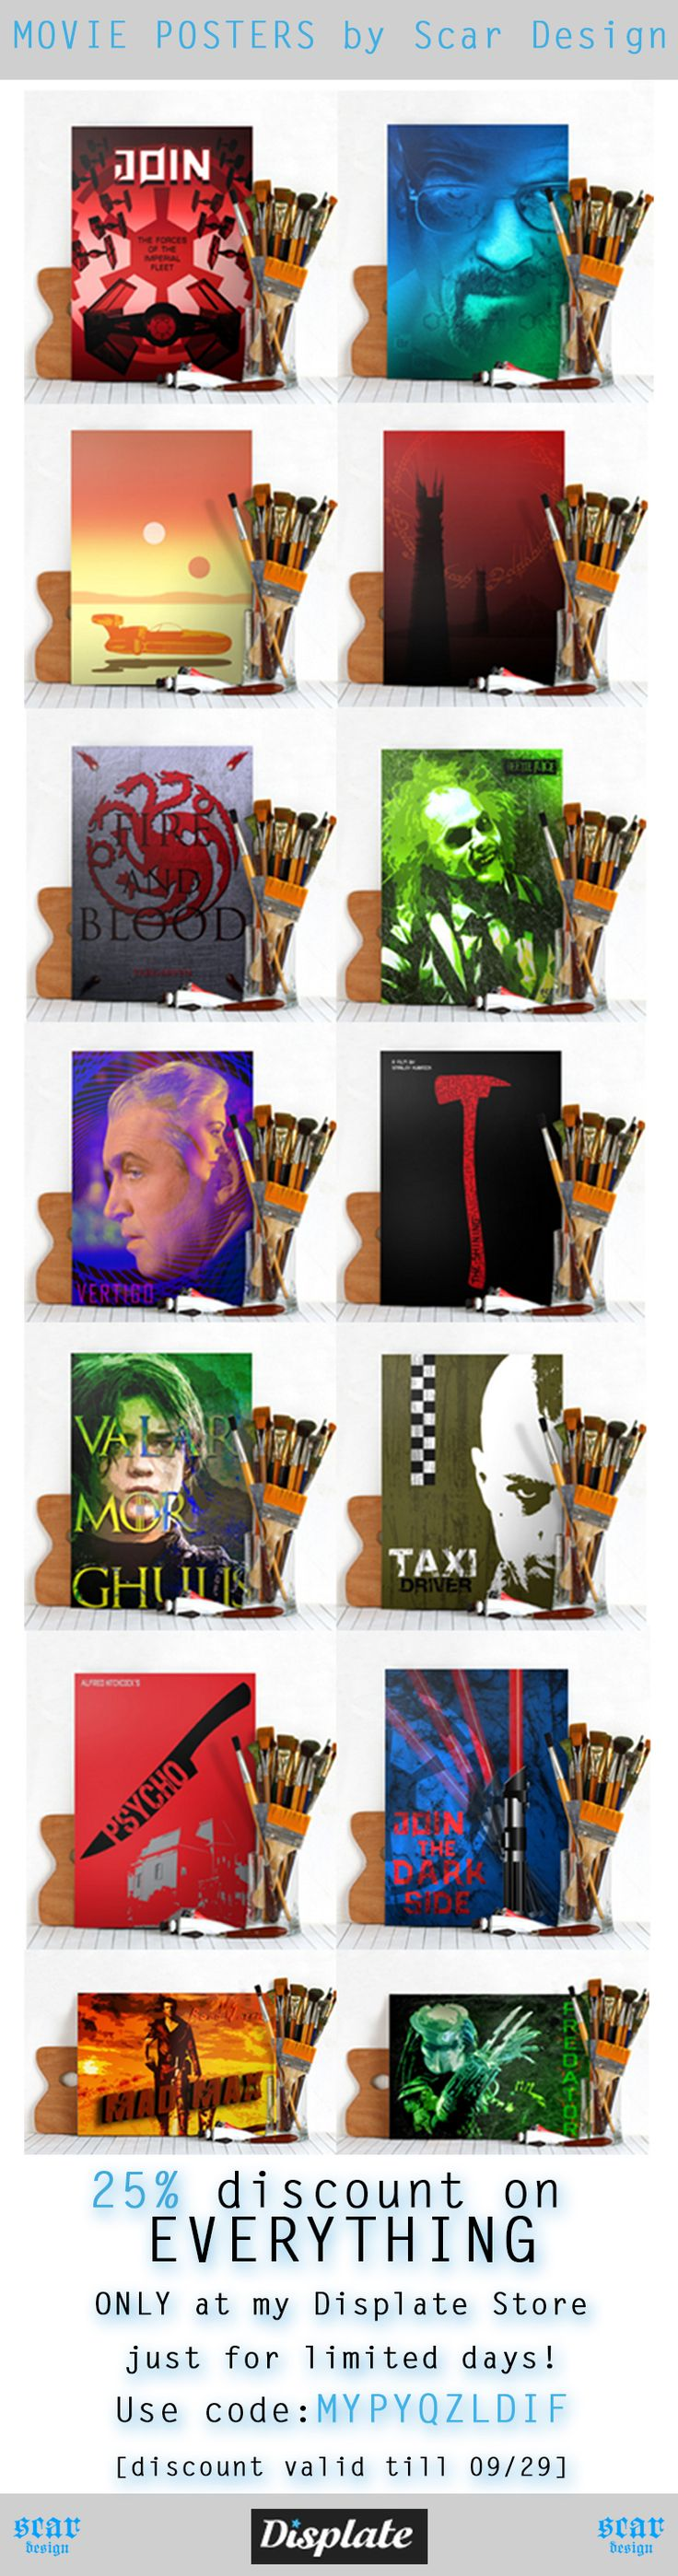 Movie Posters discount by Scar Design To get discount use code:  MYPYQZLDIF…